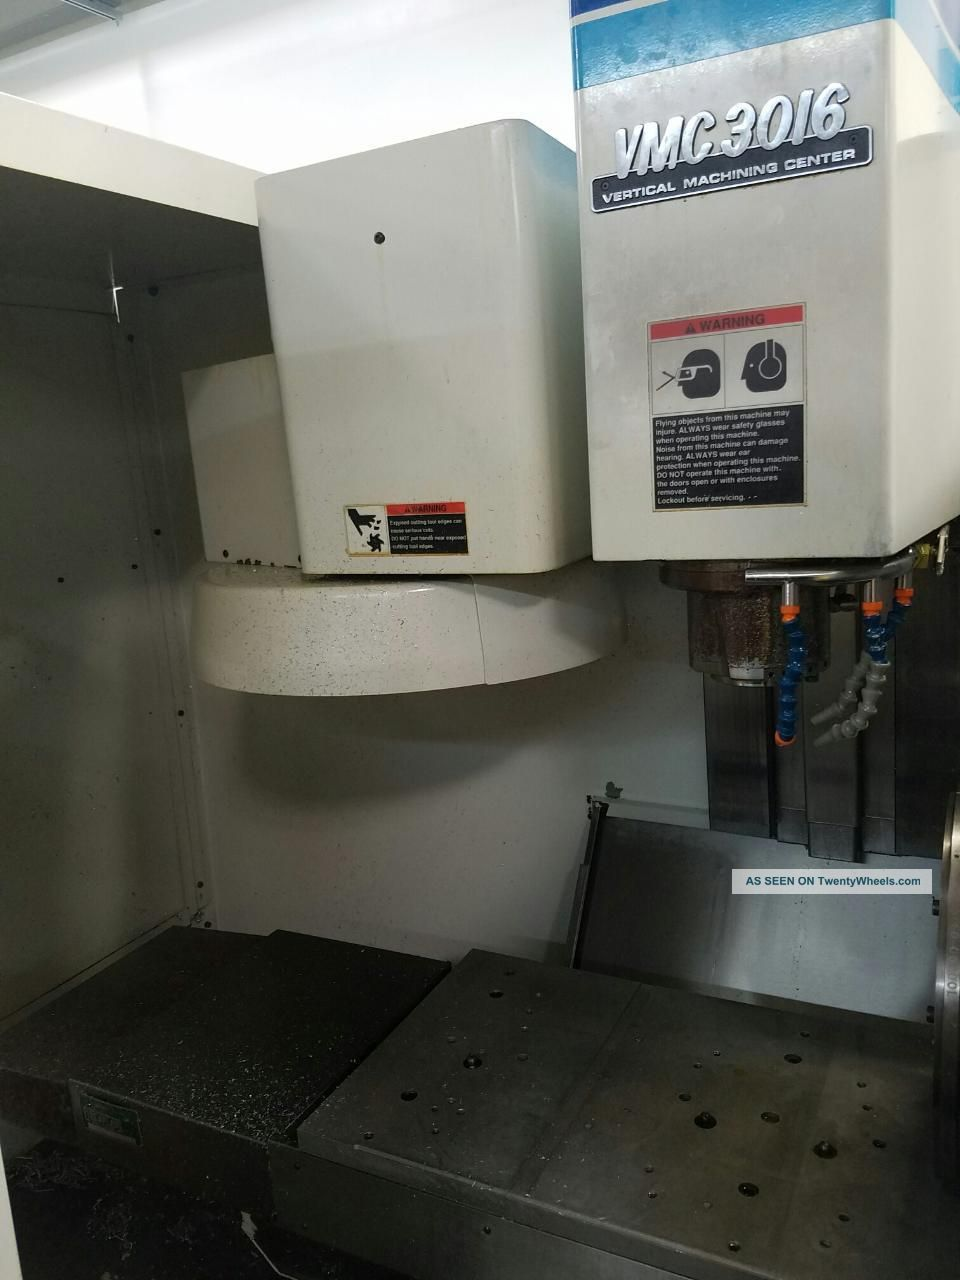 1995 Fadal Vmc 3016ht Cnc Vertical Machining Center Mill 4th Axis Ct40 20hp Milling Machines photo